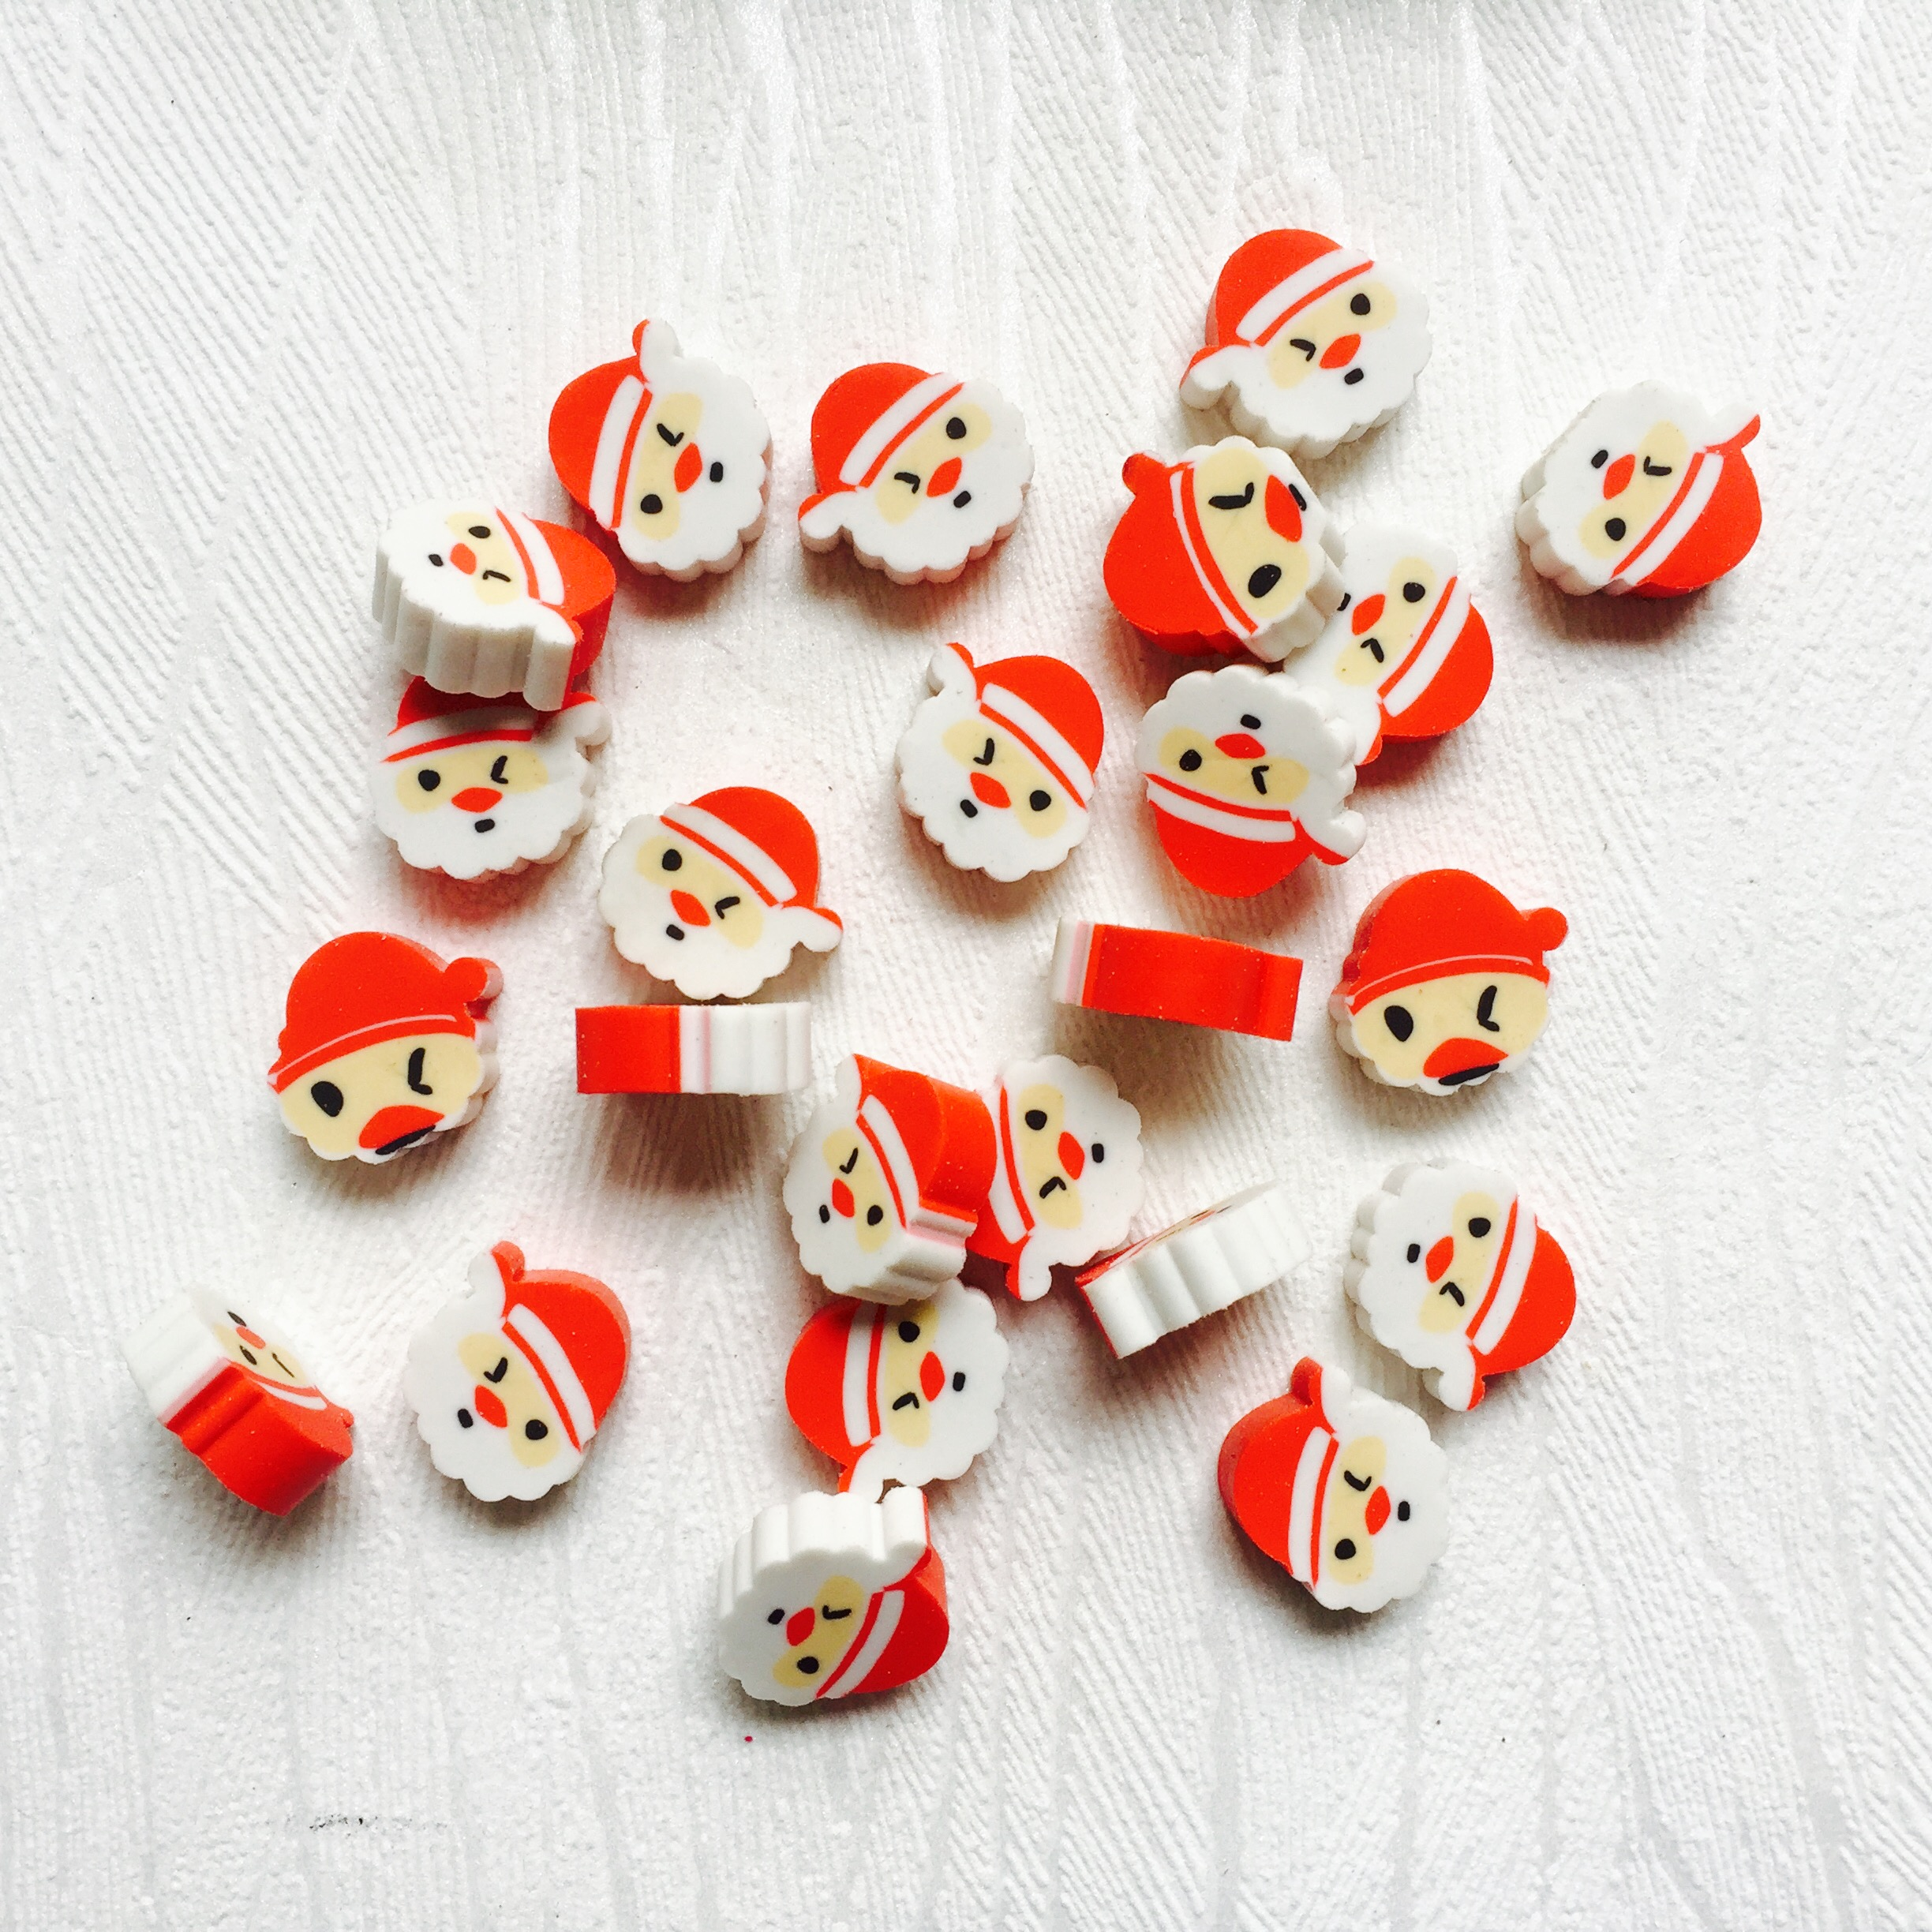 Kawaii Kids Erasers 100pcs Santa Claus Erasers Cute Pencil Eraser Student Stationery Office & School Supplies Prizes For Kids